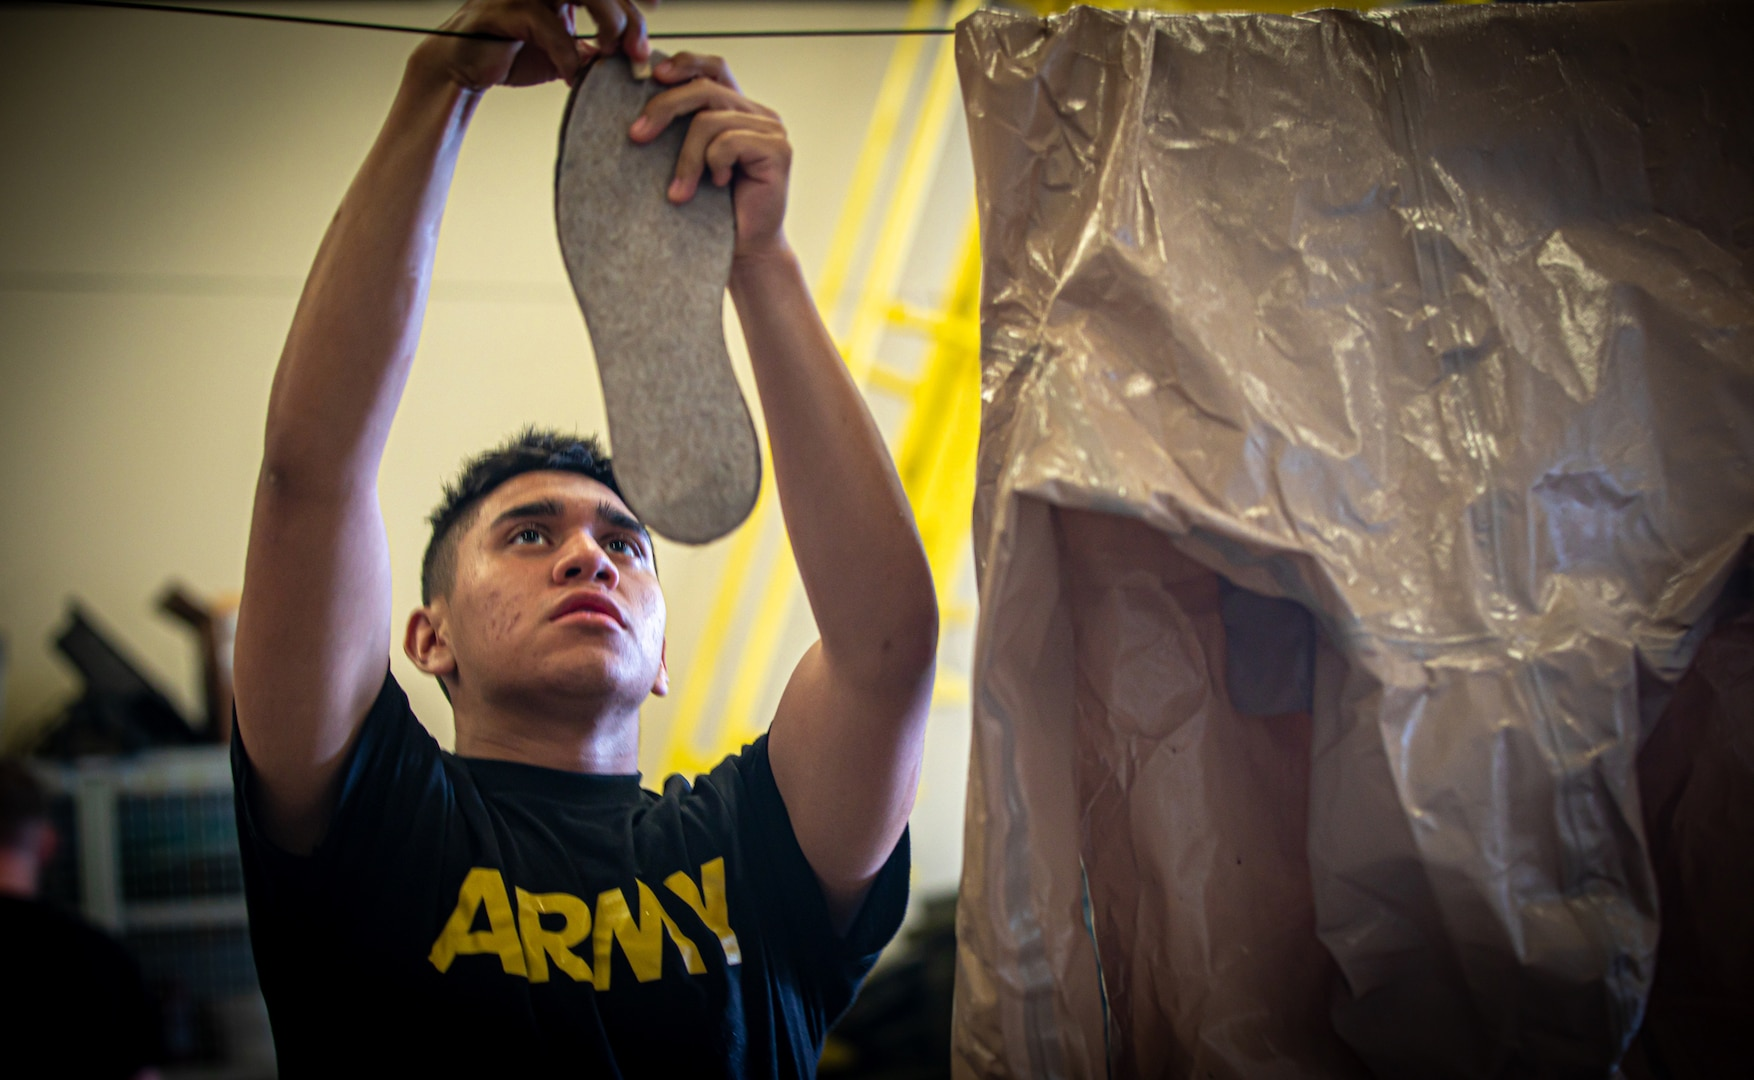 An Alabama National Guard Soldier with a Task Force 31 disinfection team hangs up his personal protective suit to dry in a Fort Whiting hangar in Mobile, Alabama, May 15, 2020.